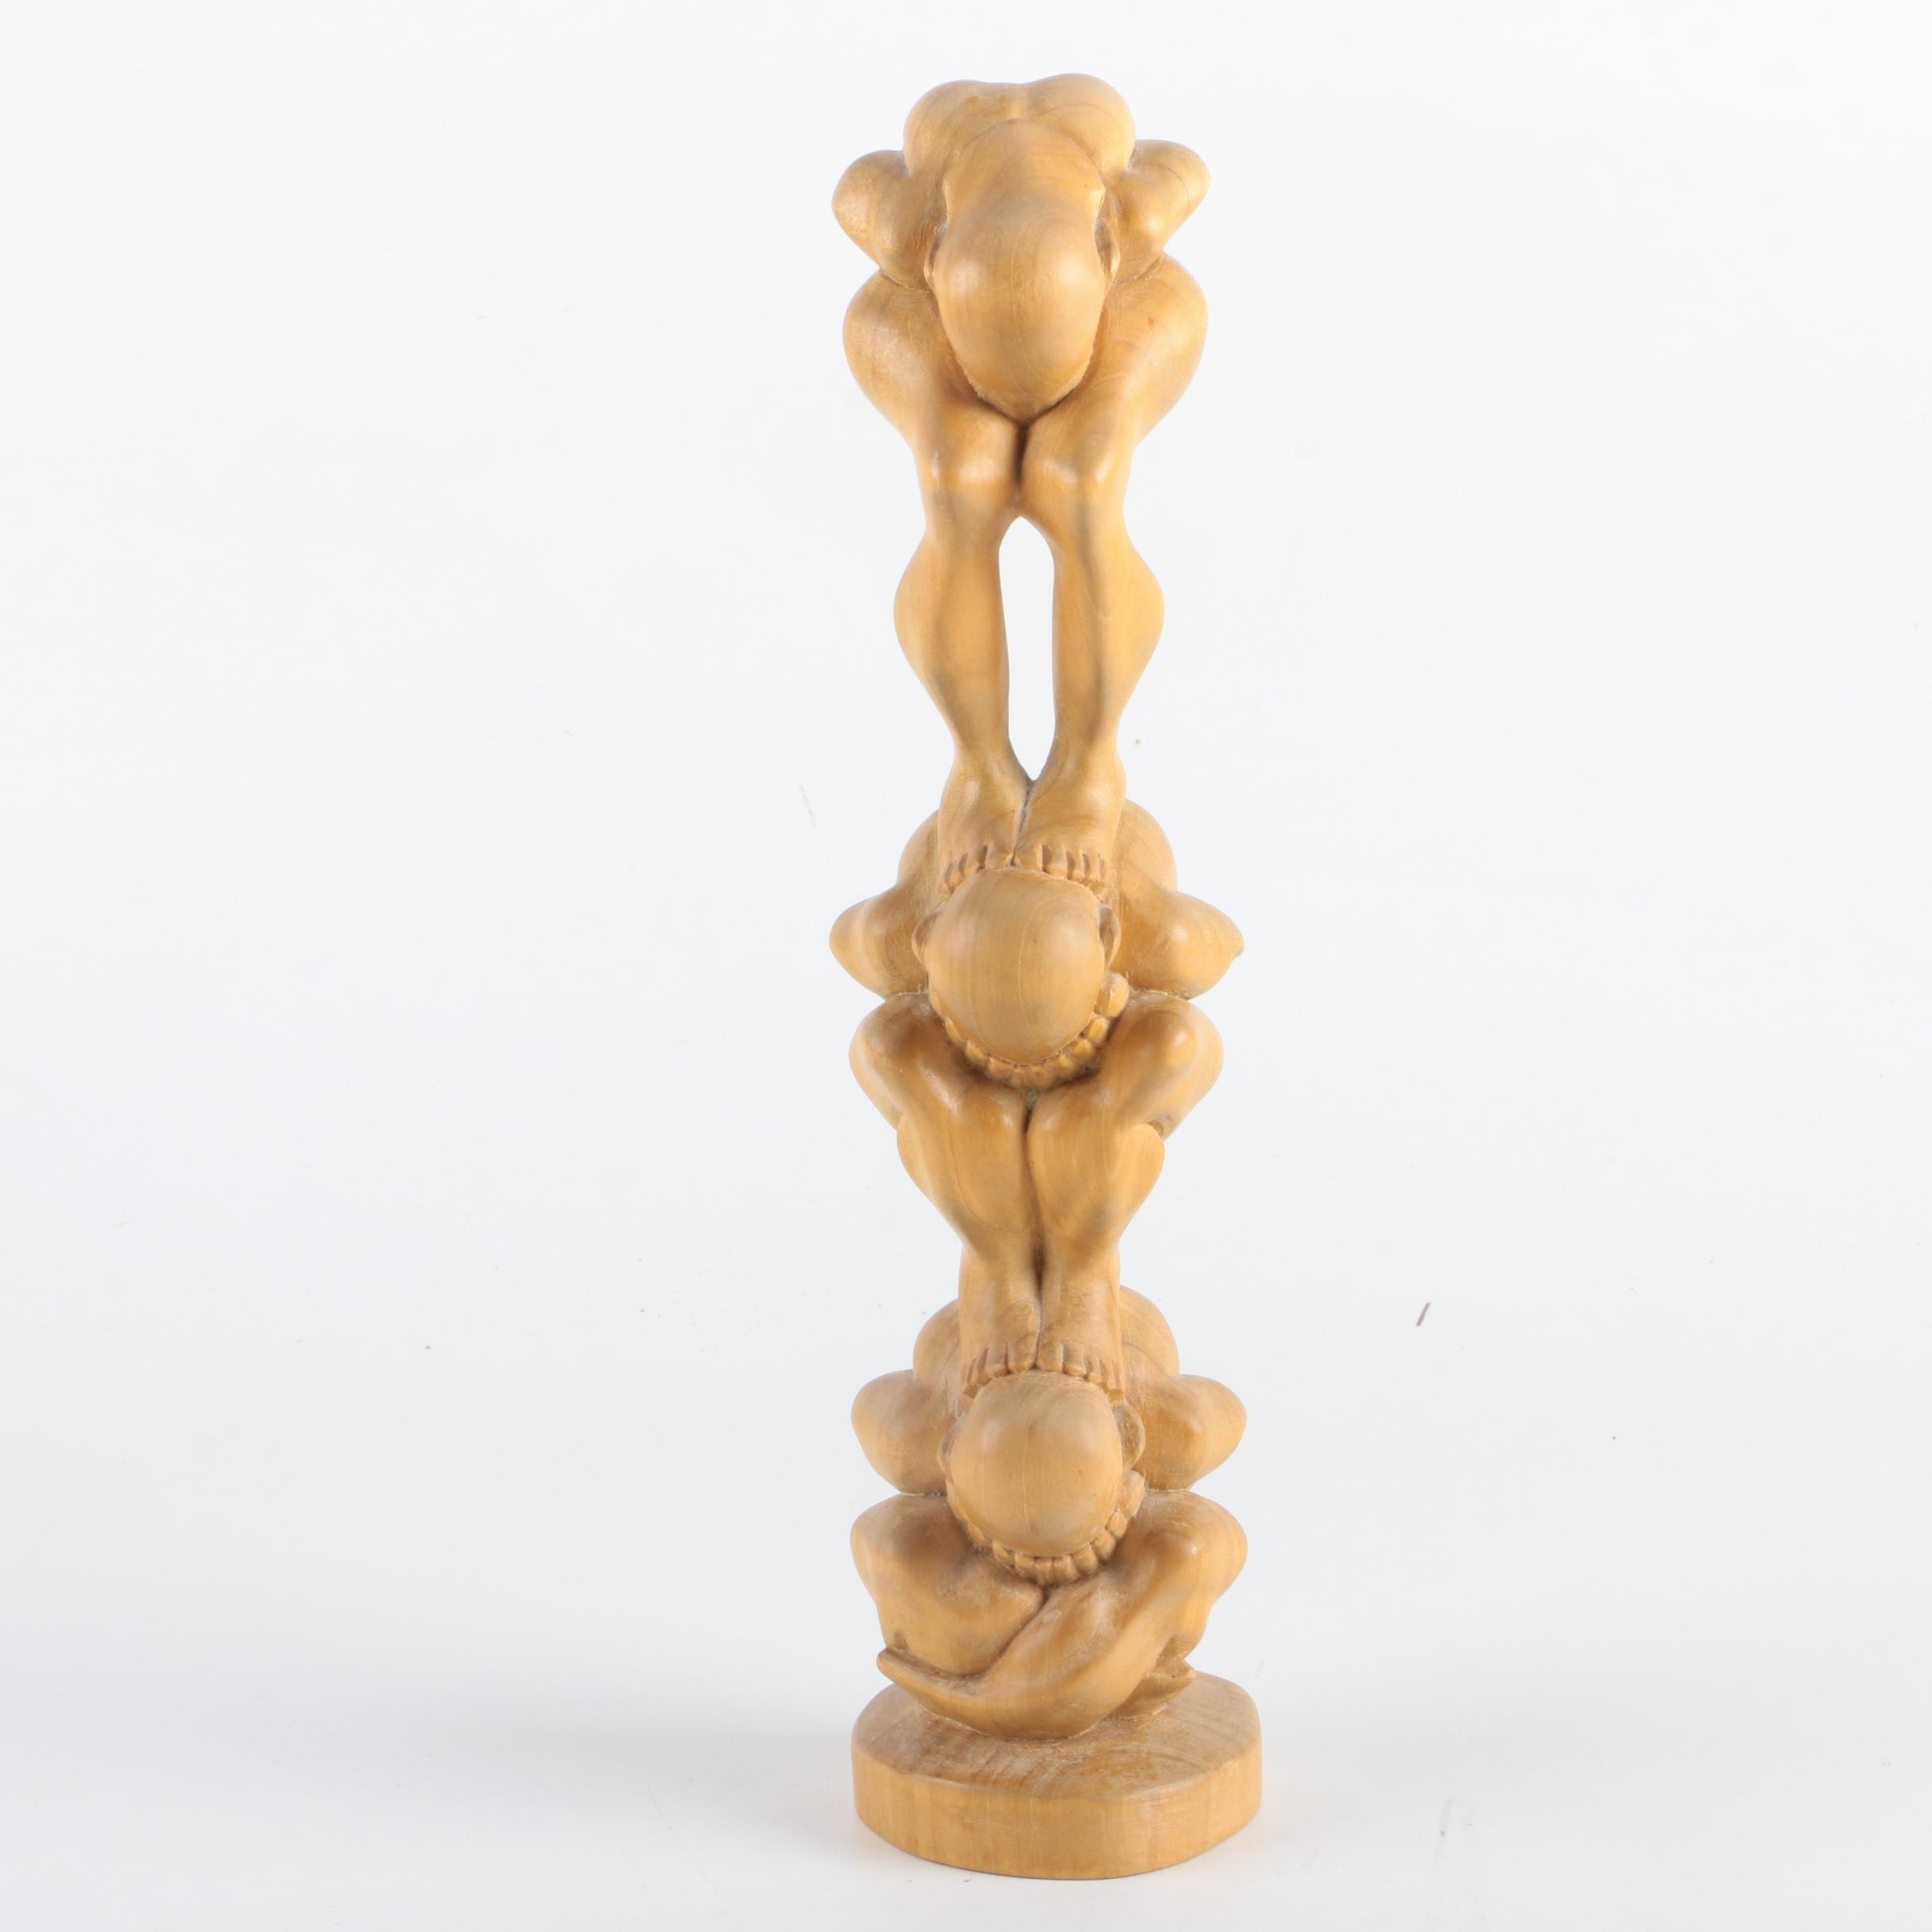 Balinese Wooden Carving of Stacked Nudes